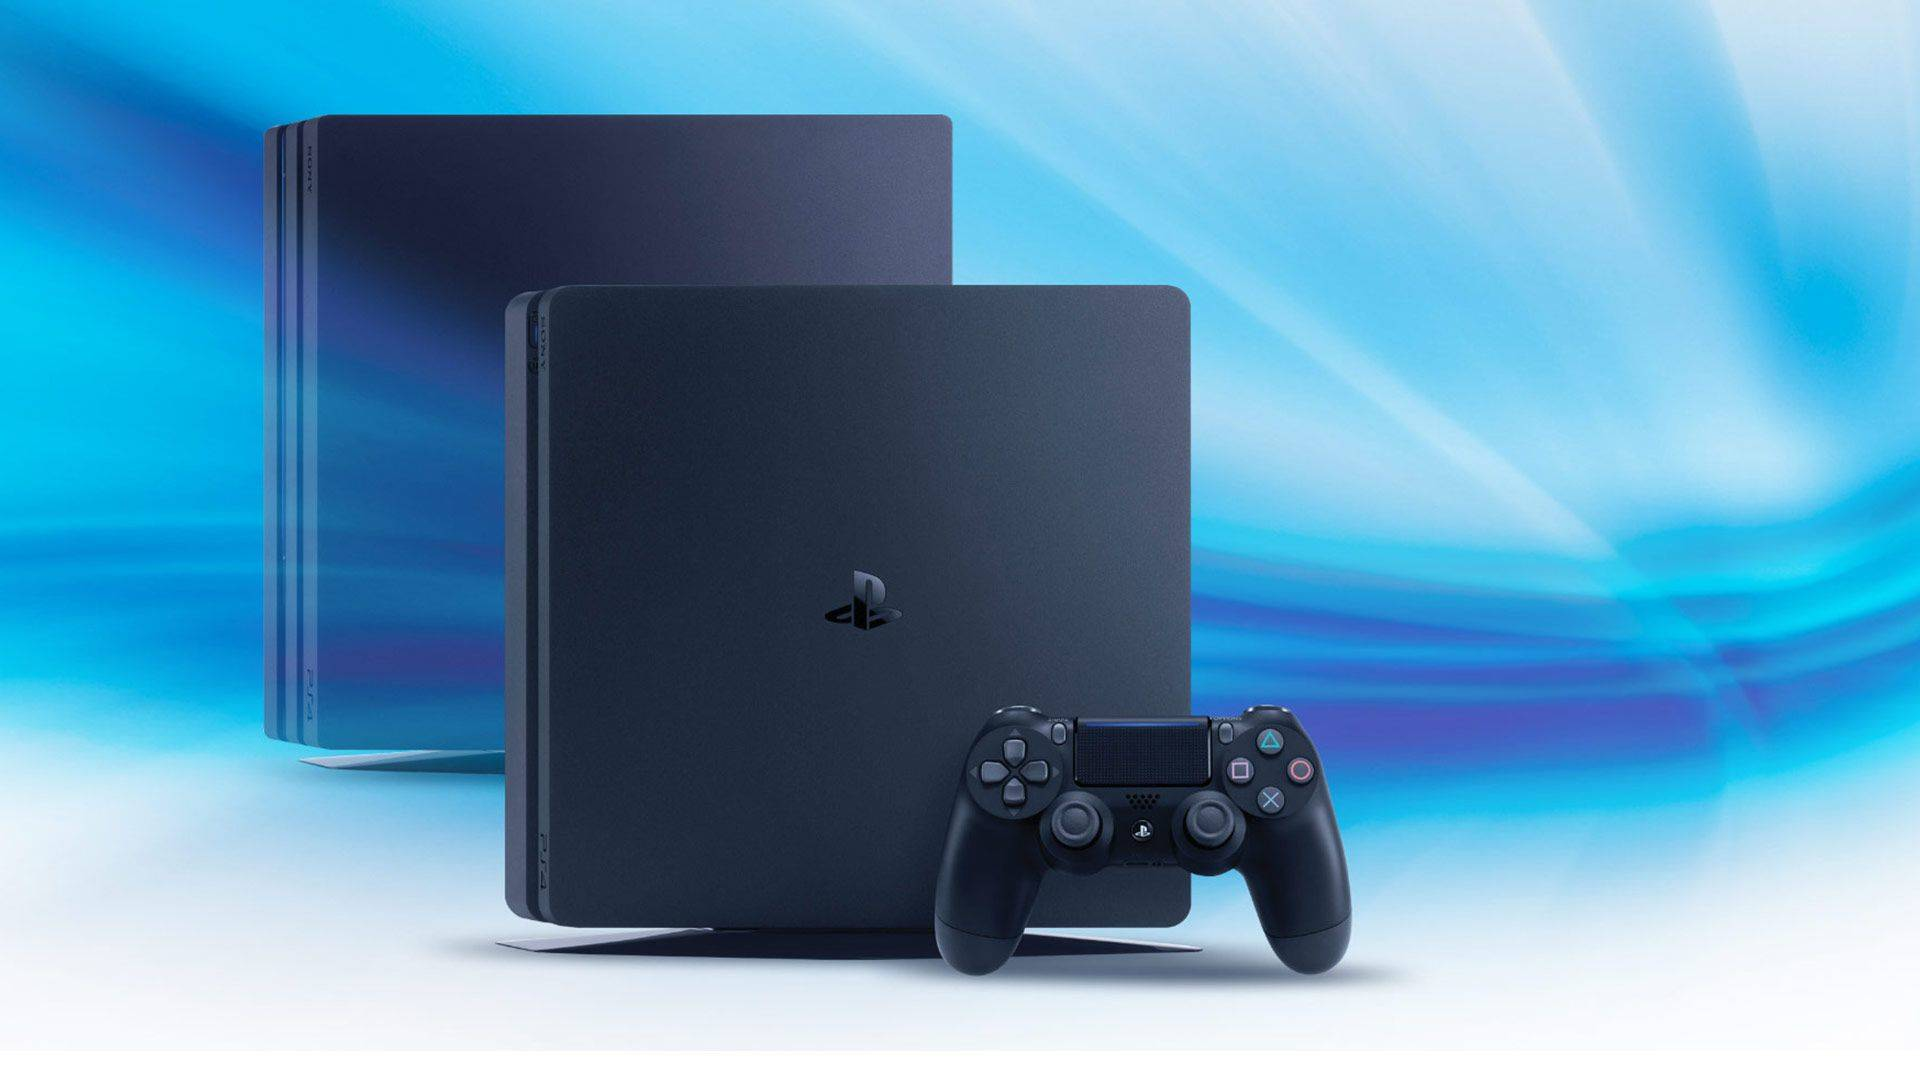 PlayStation 4 e PlayStation 4 Pro e DualShock 4